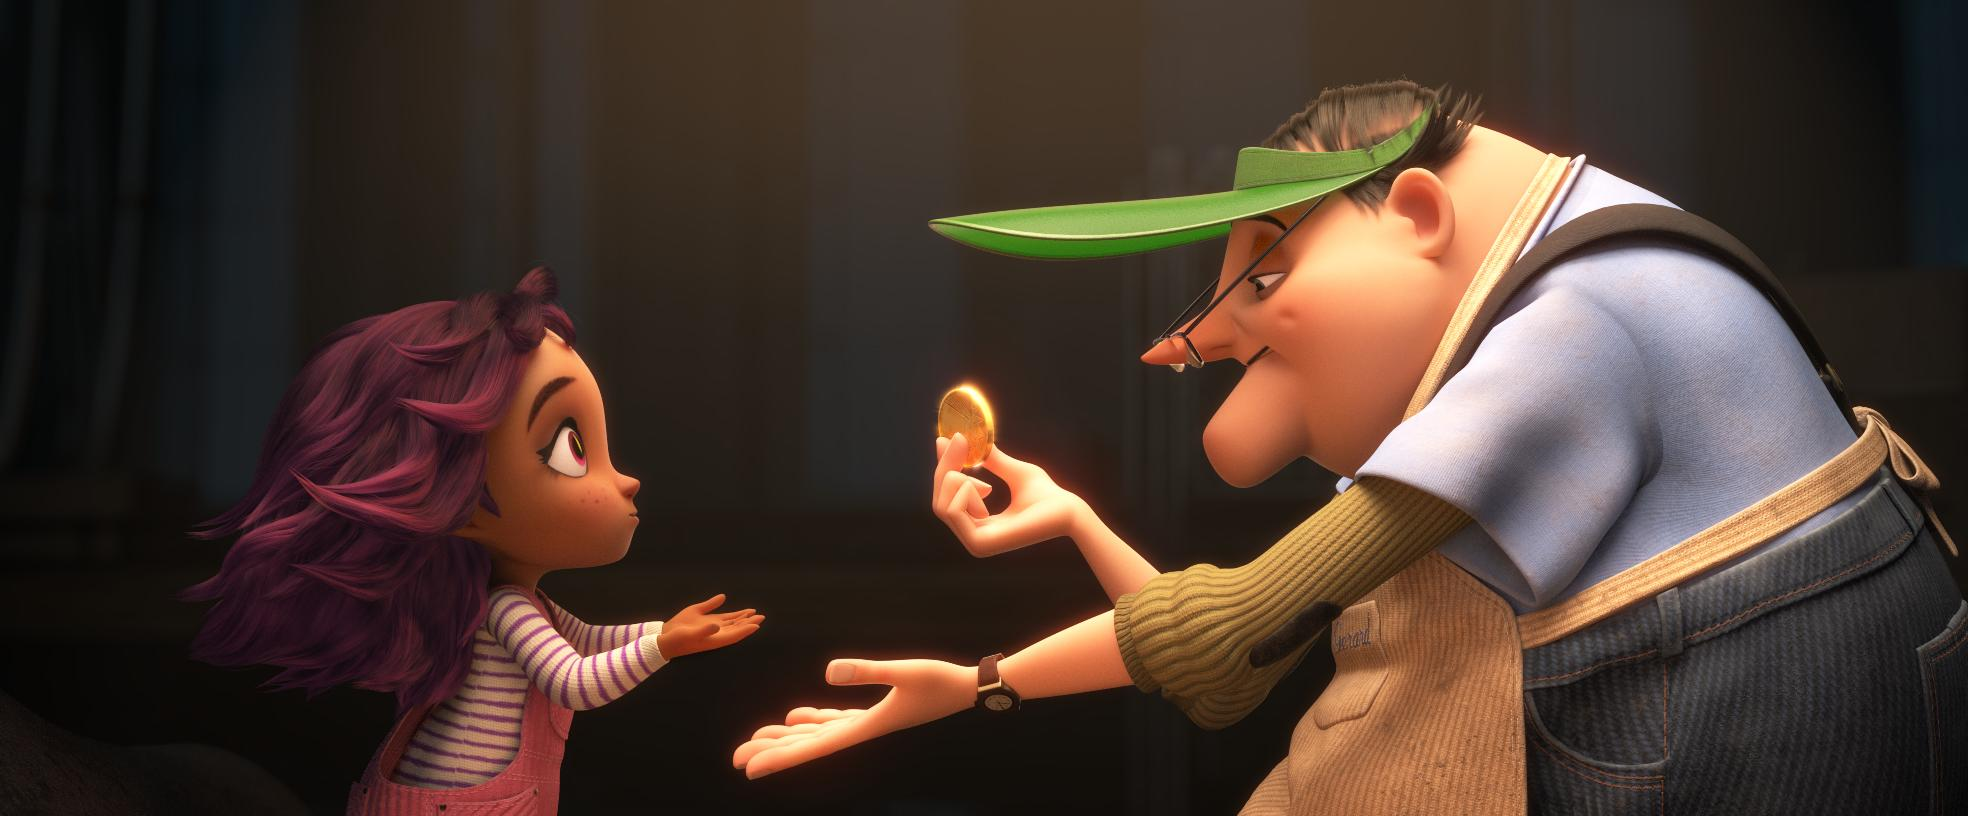 DreamWorks Animated Short, 'To: Gerard,' to Premiere at the Tribeca Film Festival